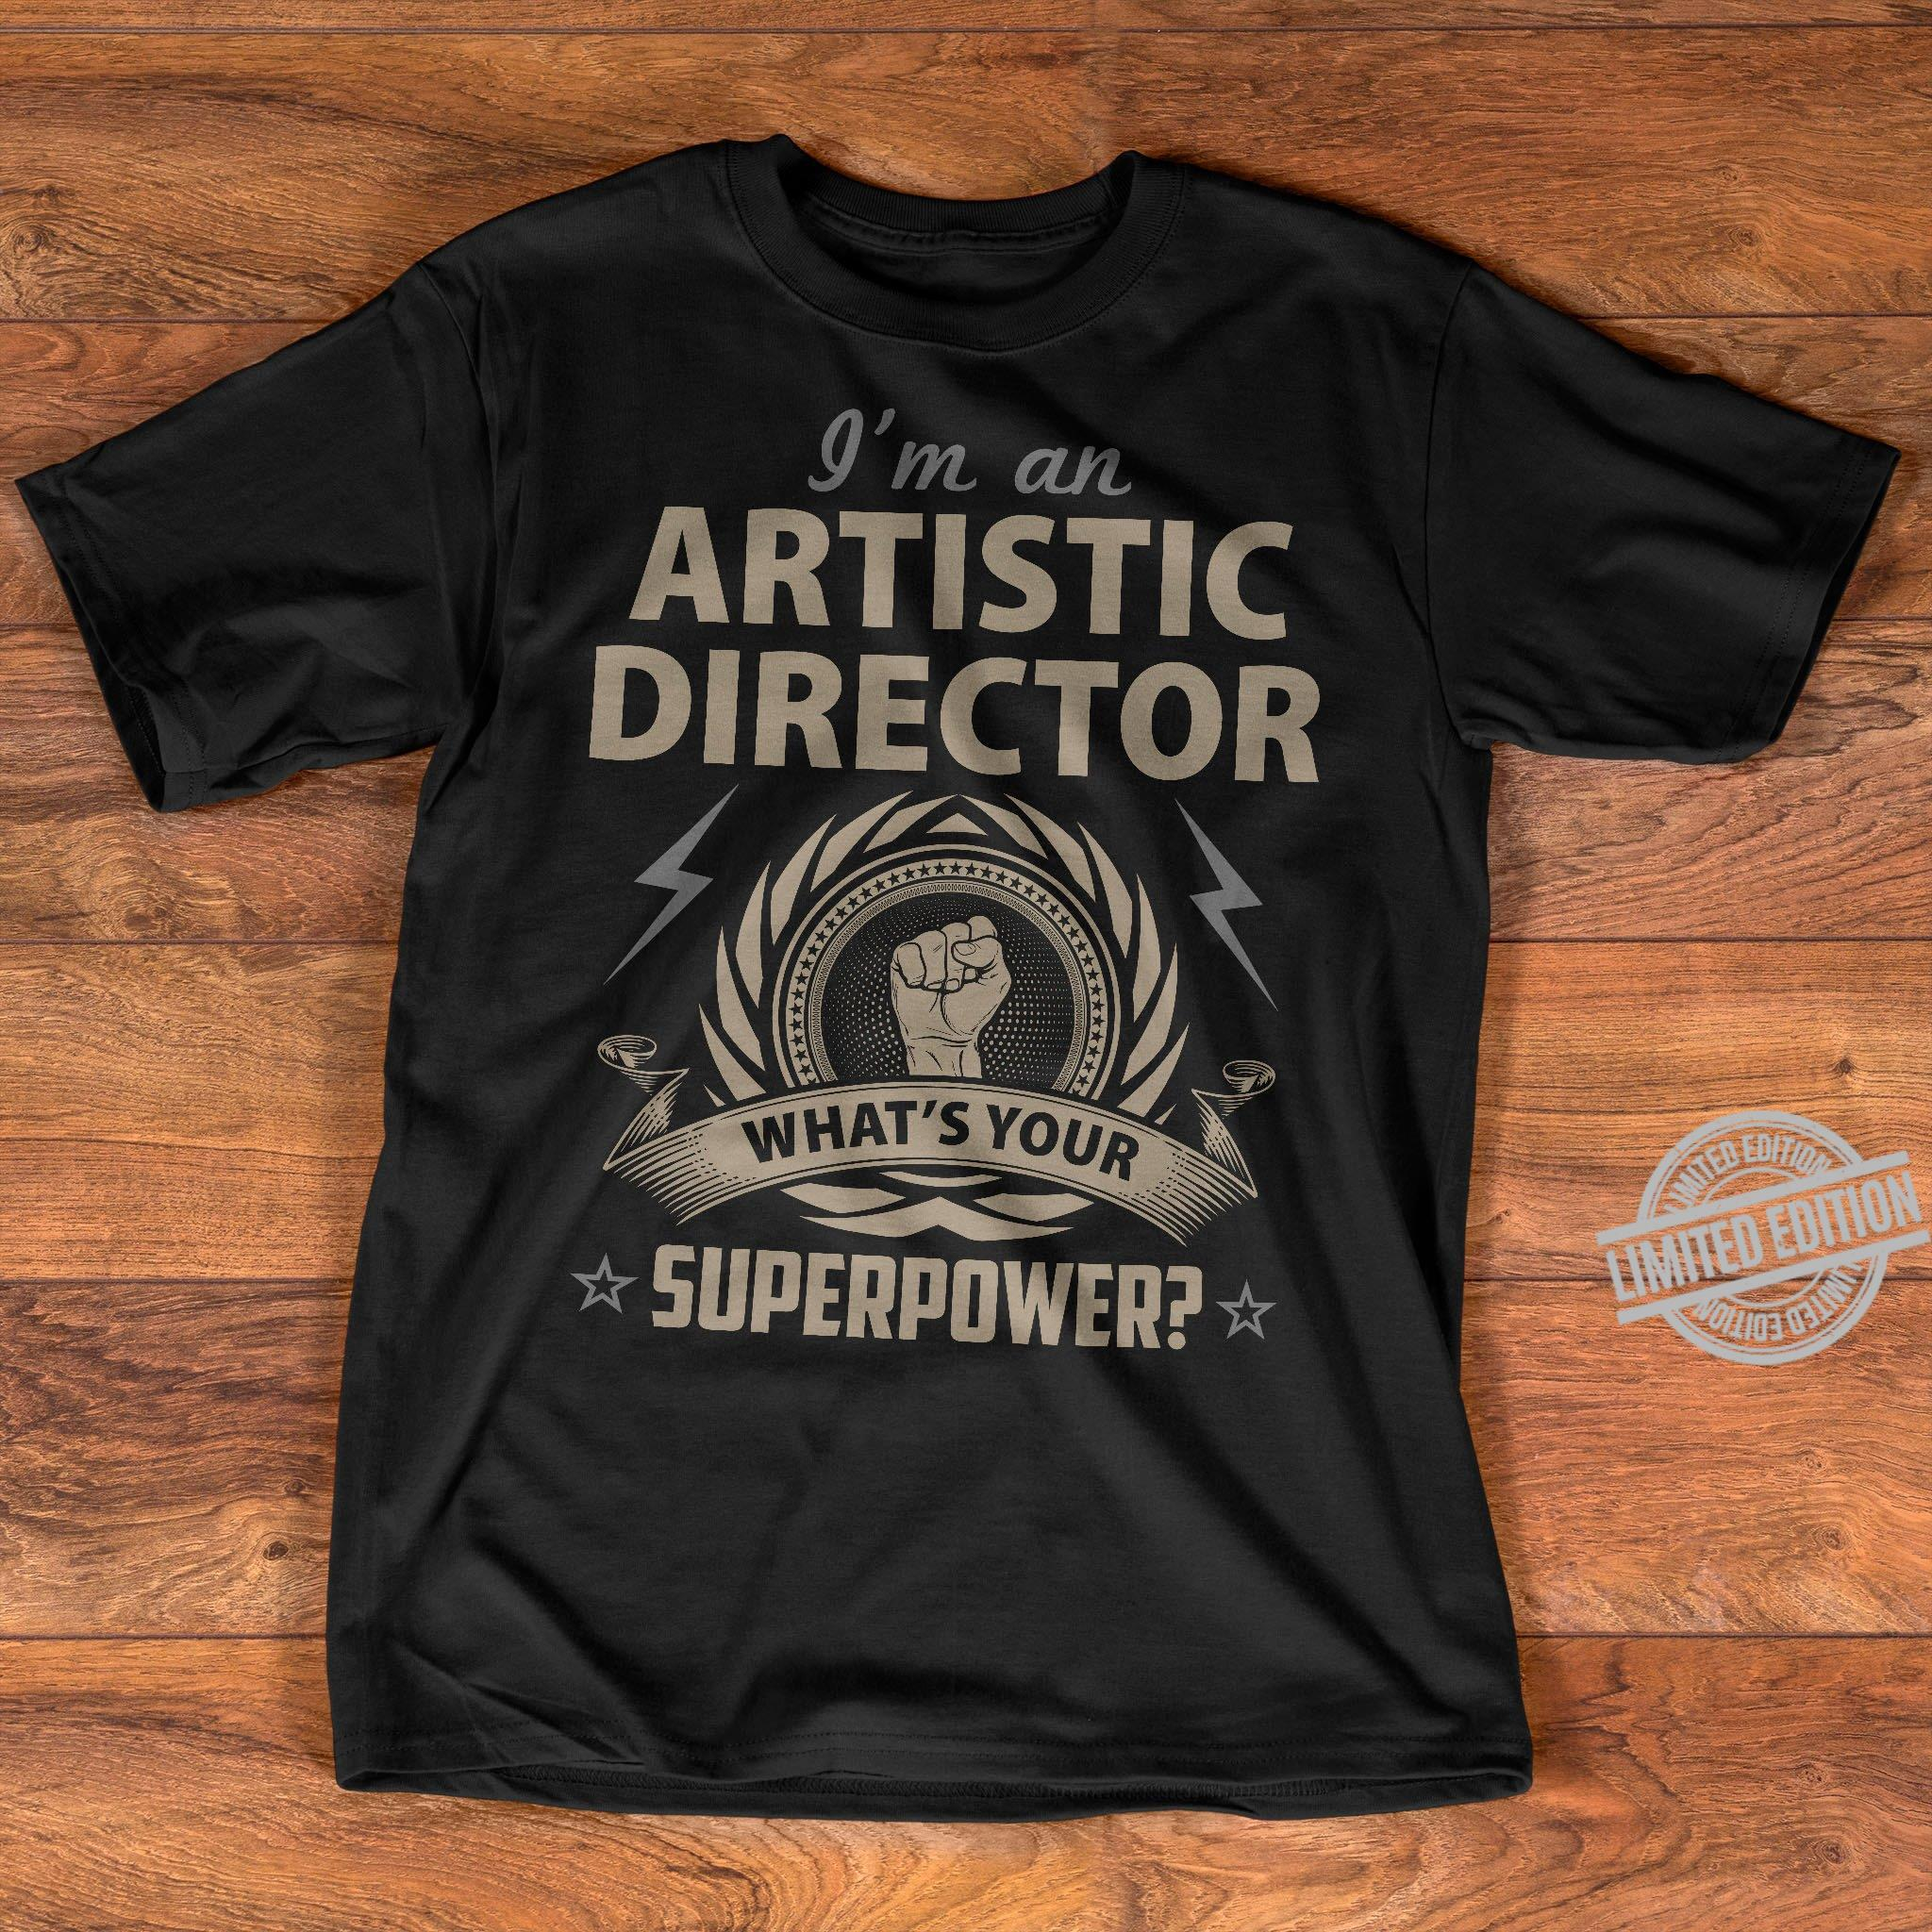 I'm an artistic director superpower shirt